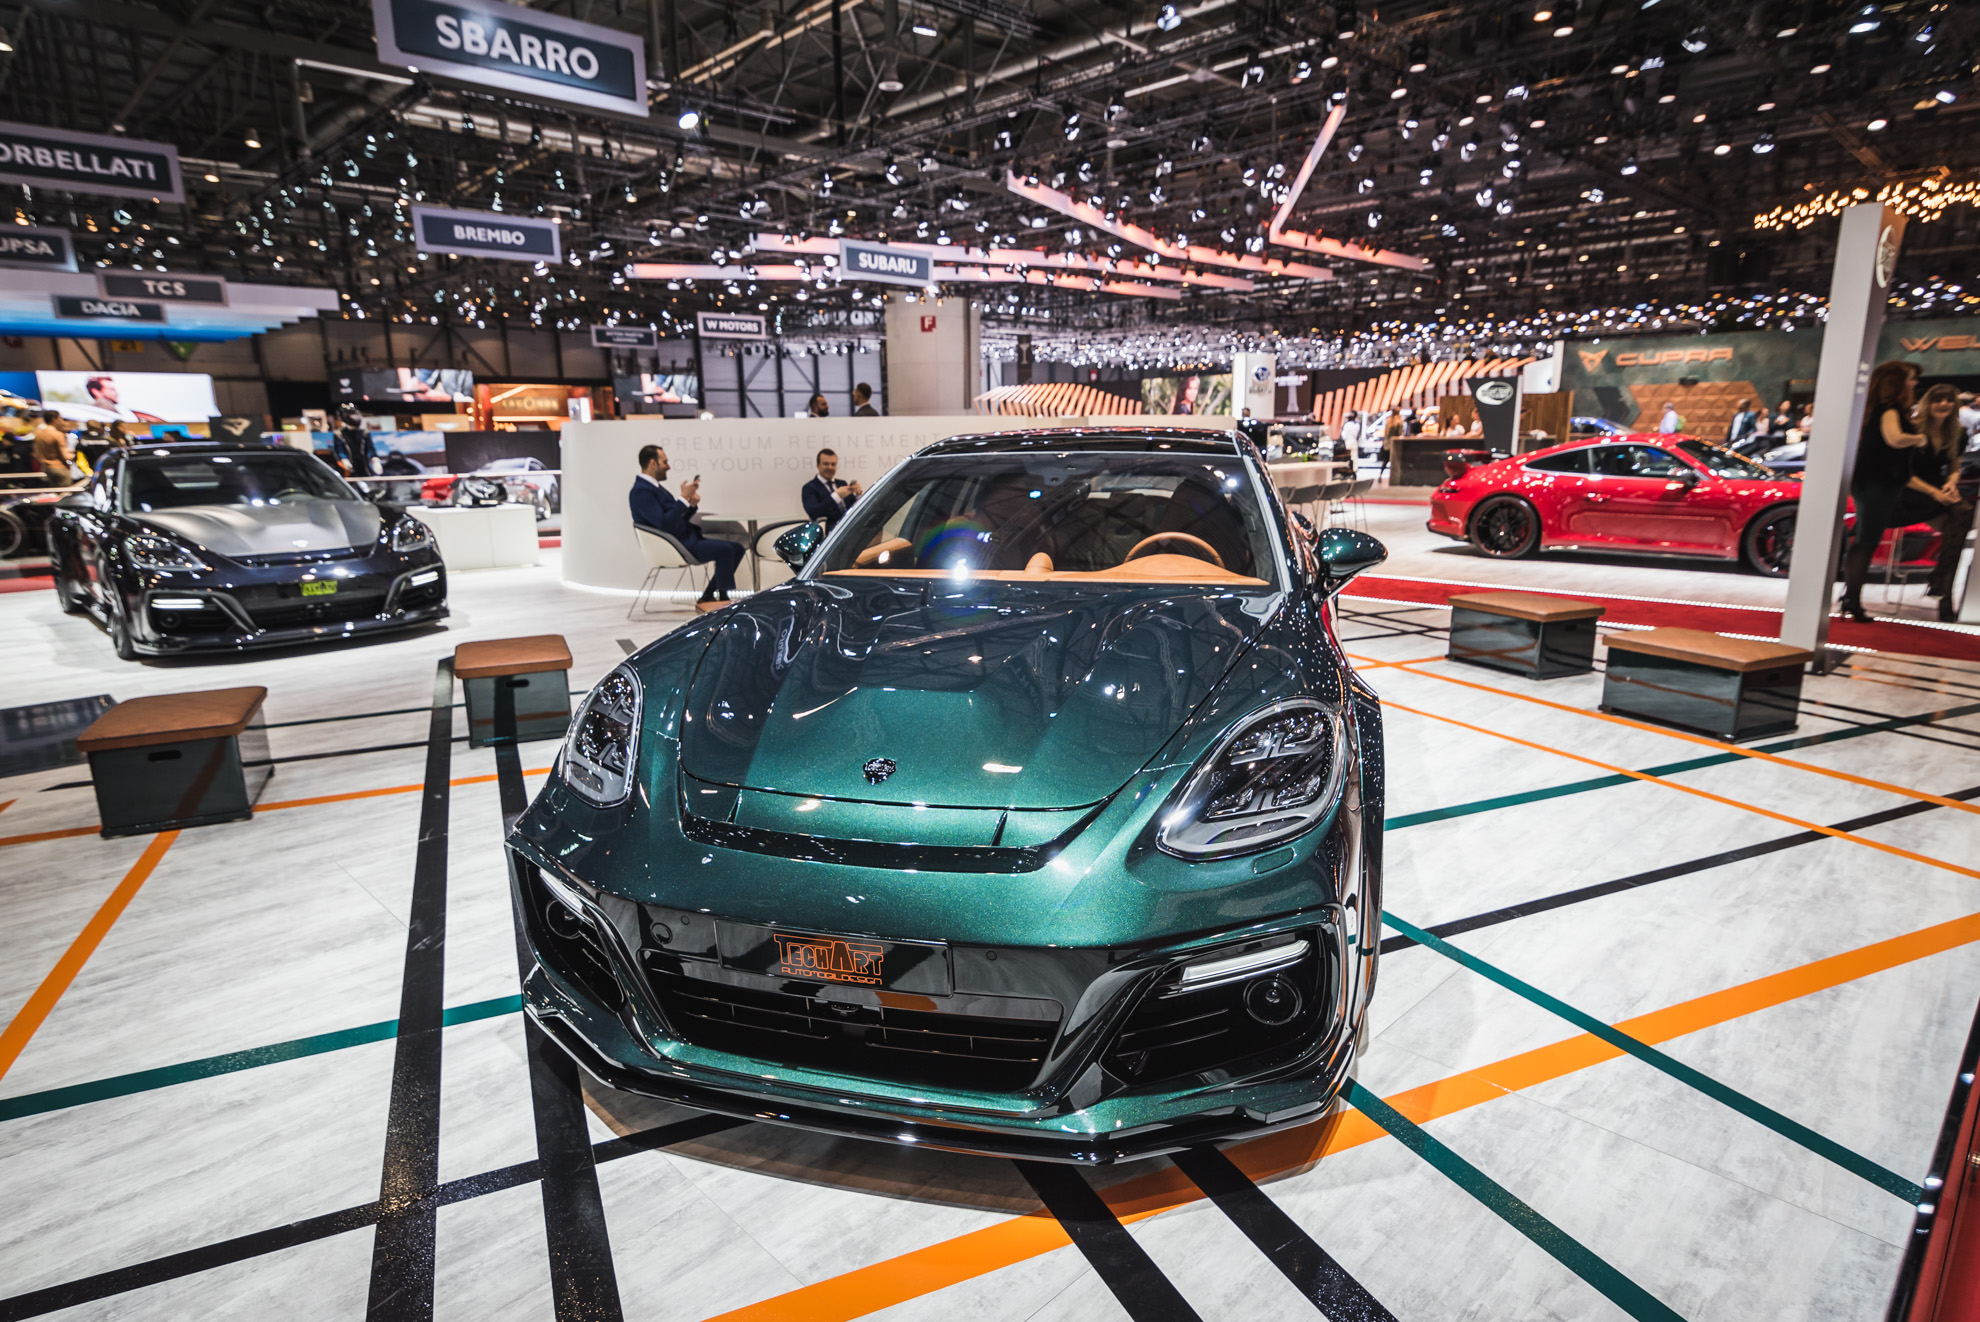 geneva-international-motor-show-igors-sinitsins-1